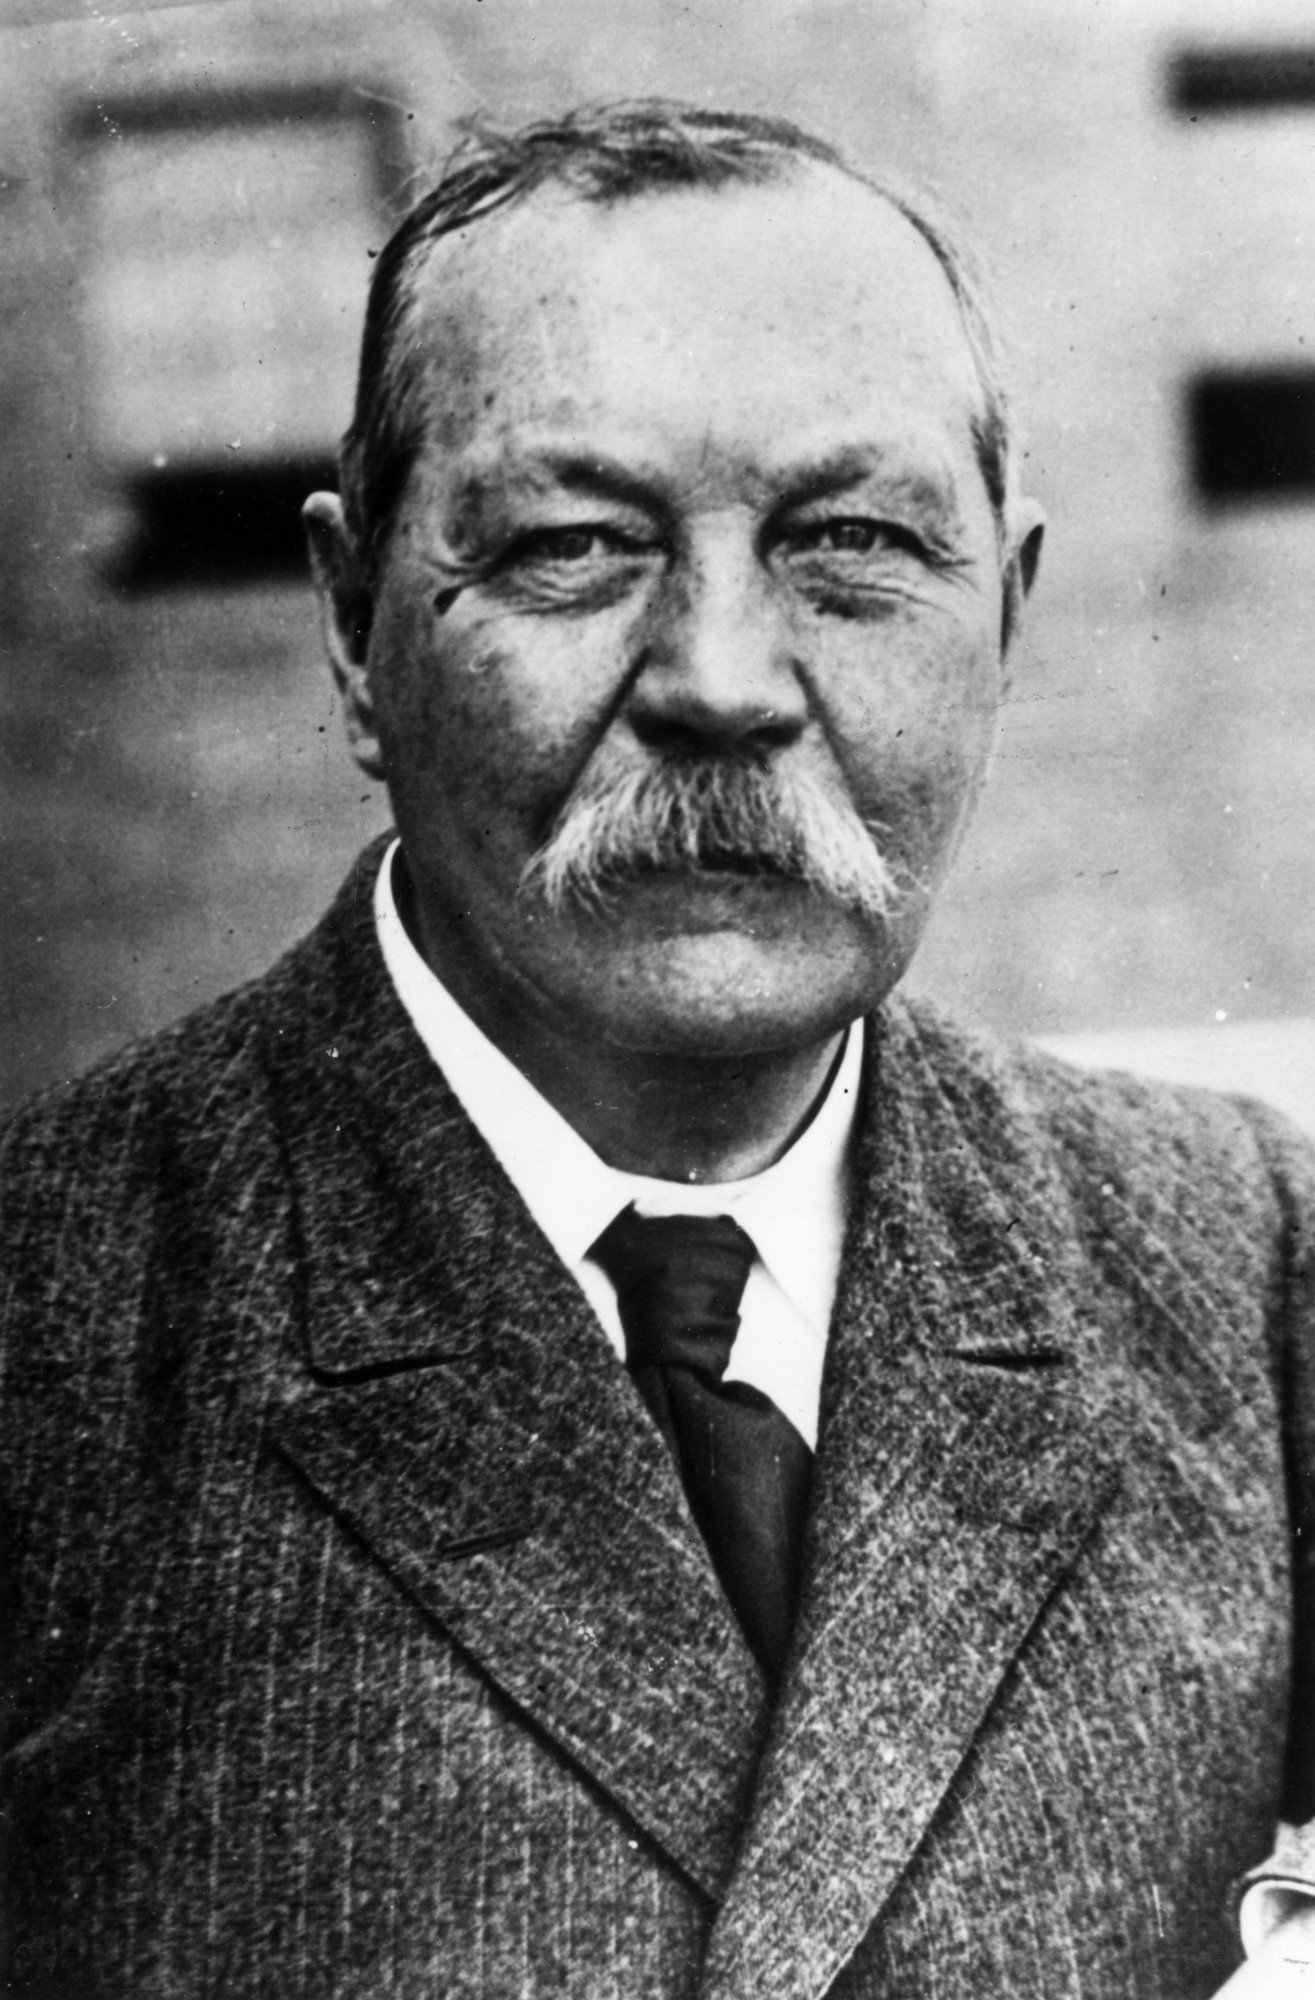 circa 1930: Scottish novelist Sir Arthur Conan Doyle. (Photo by General Photographic Agency/Getty Images)